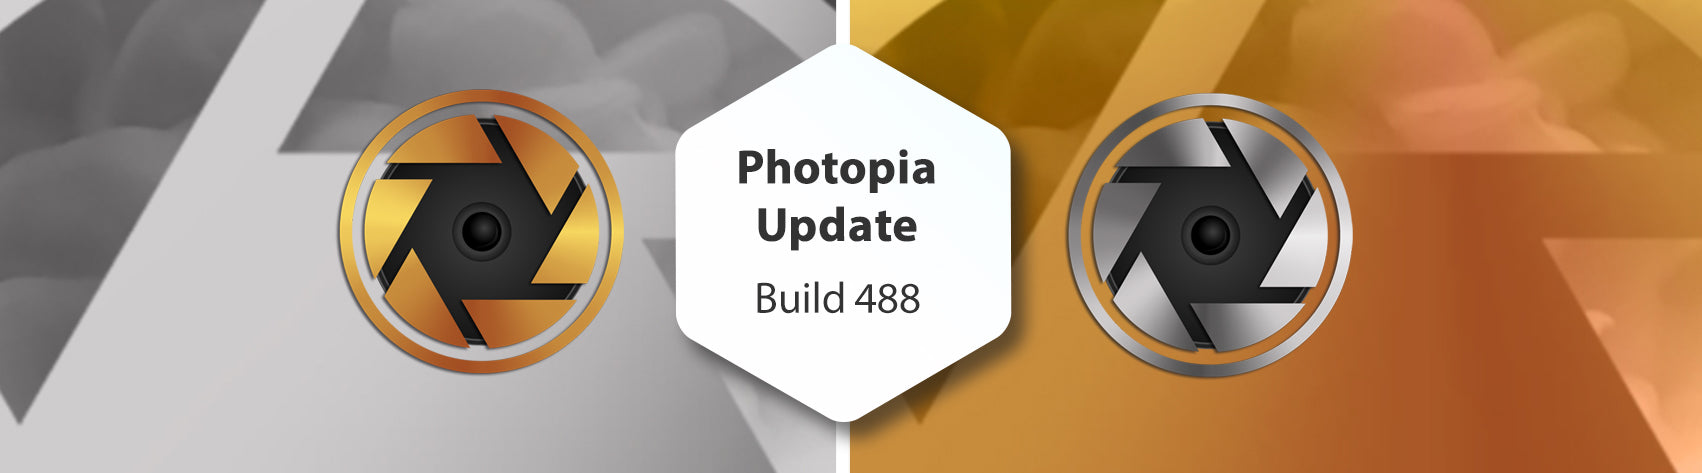 Photopia Update - Build 488